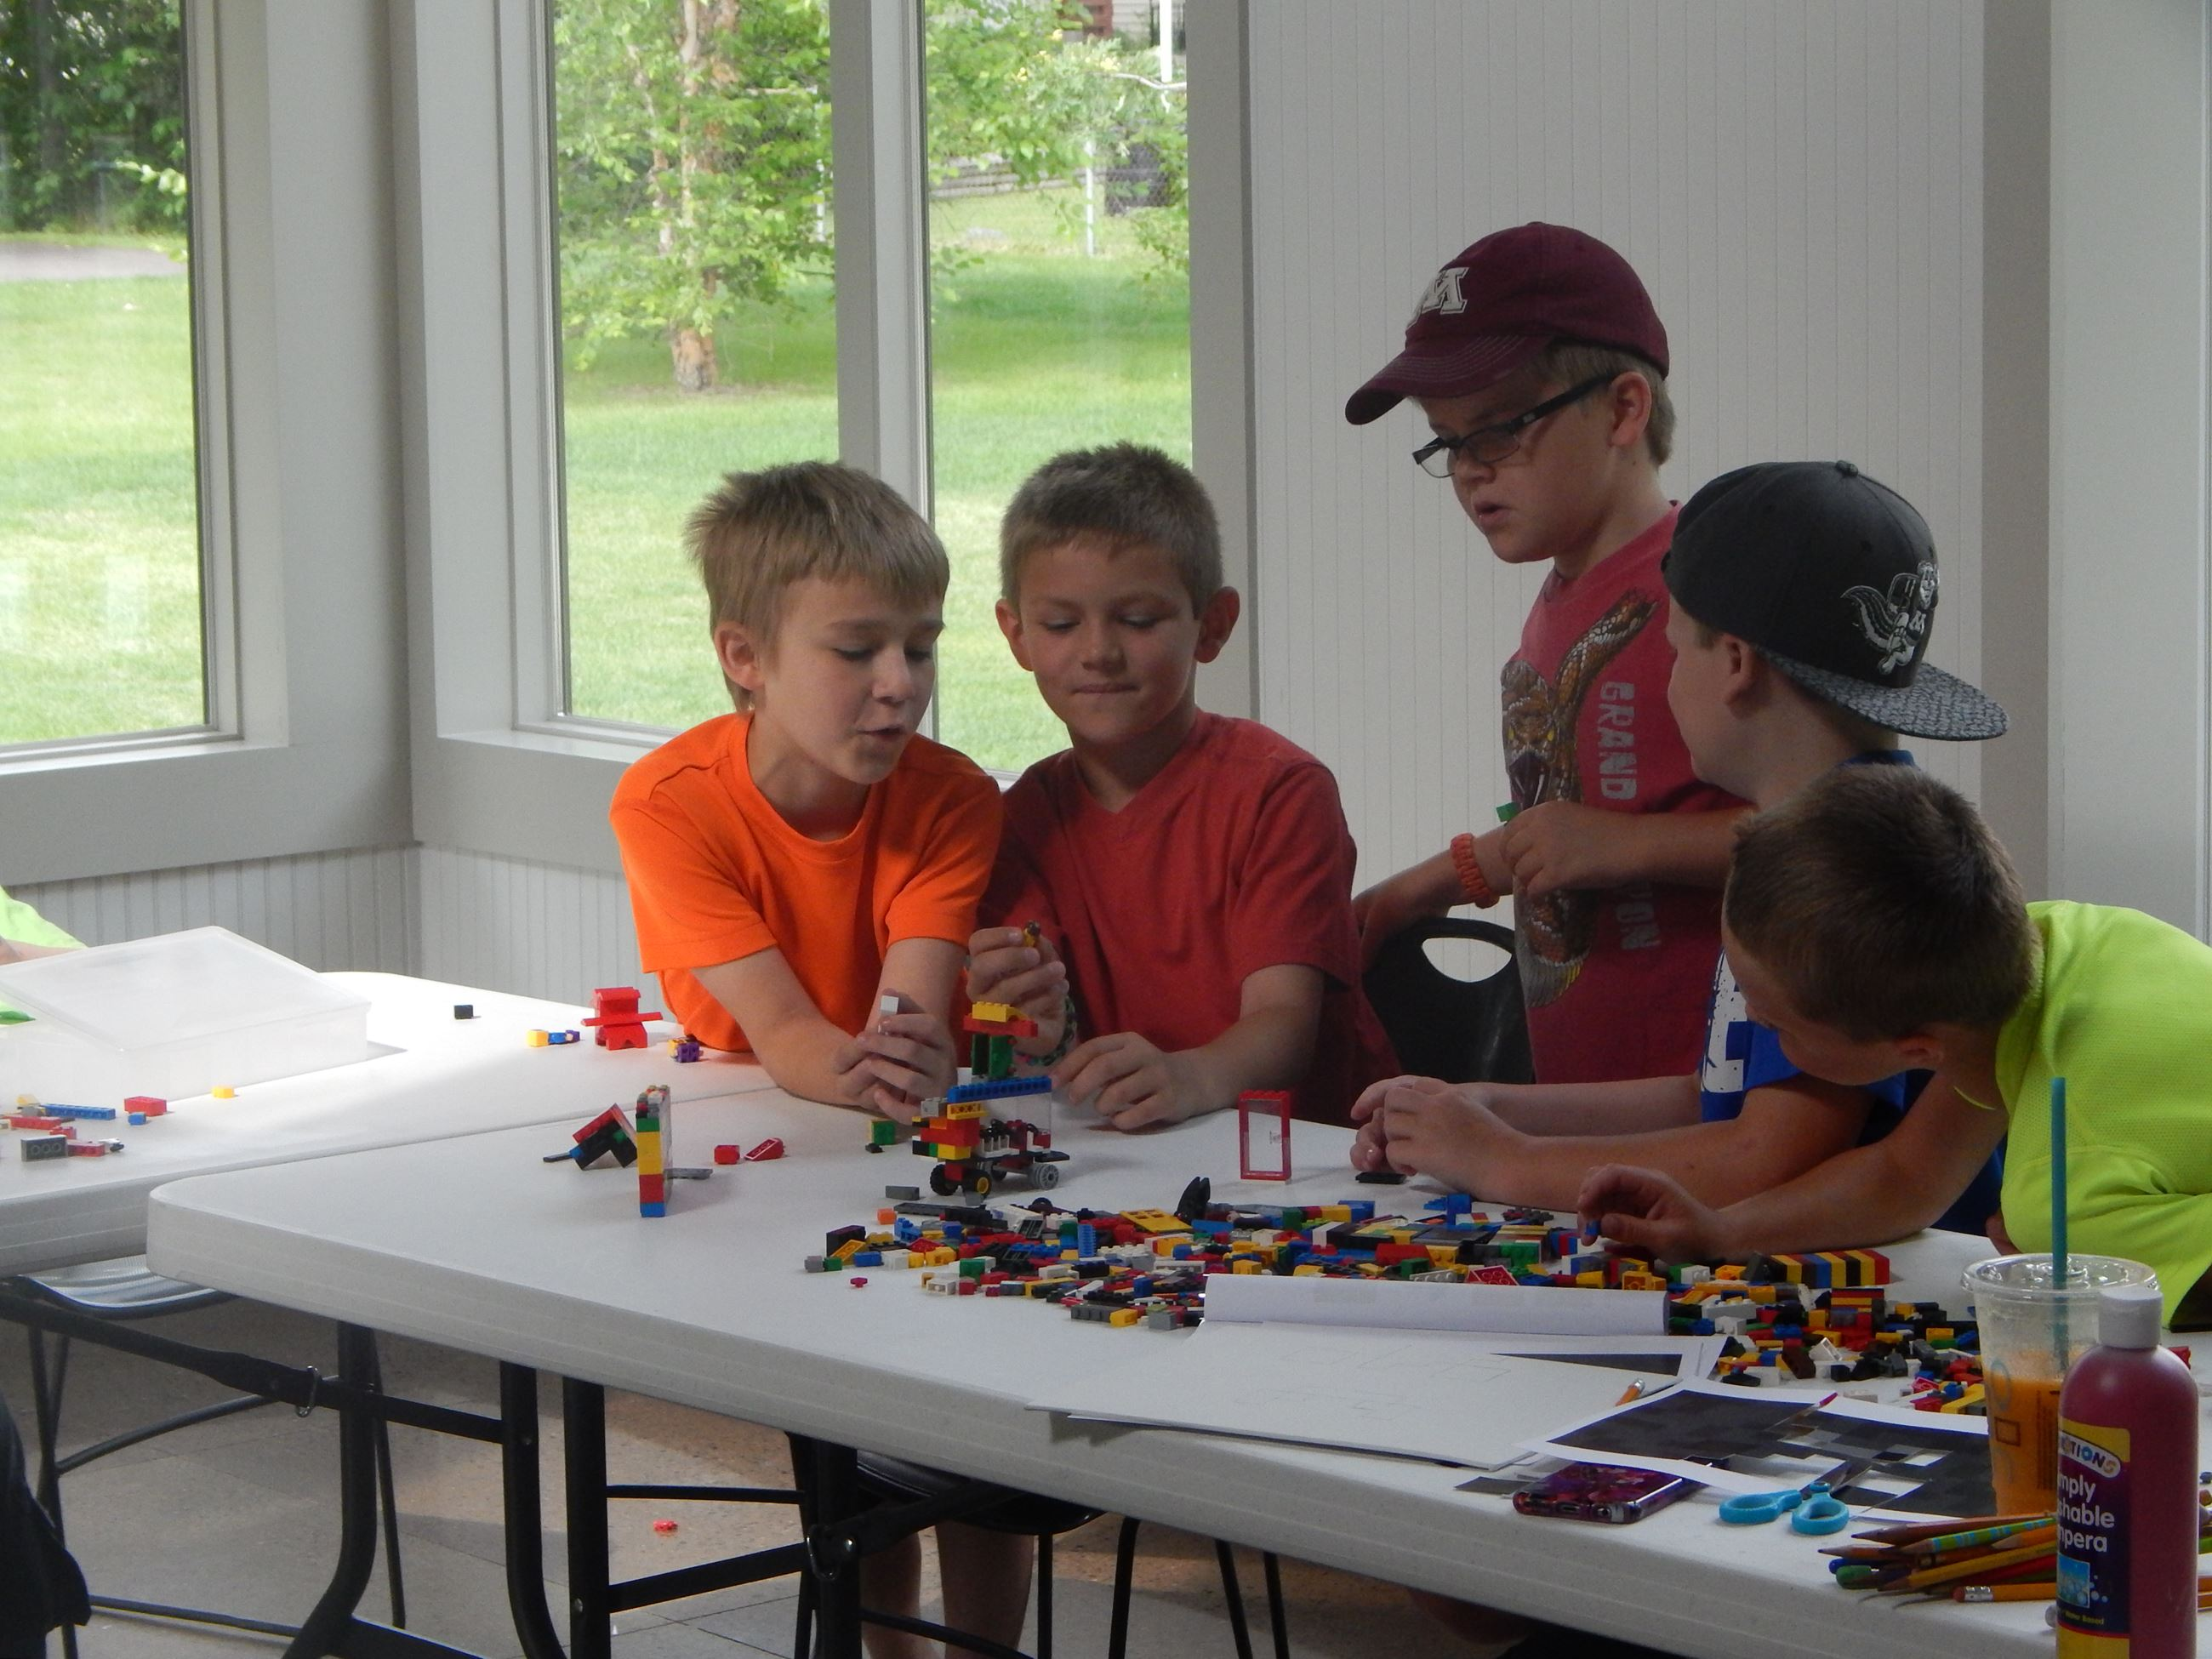 LEGO art camp - boys